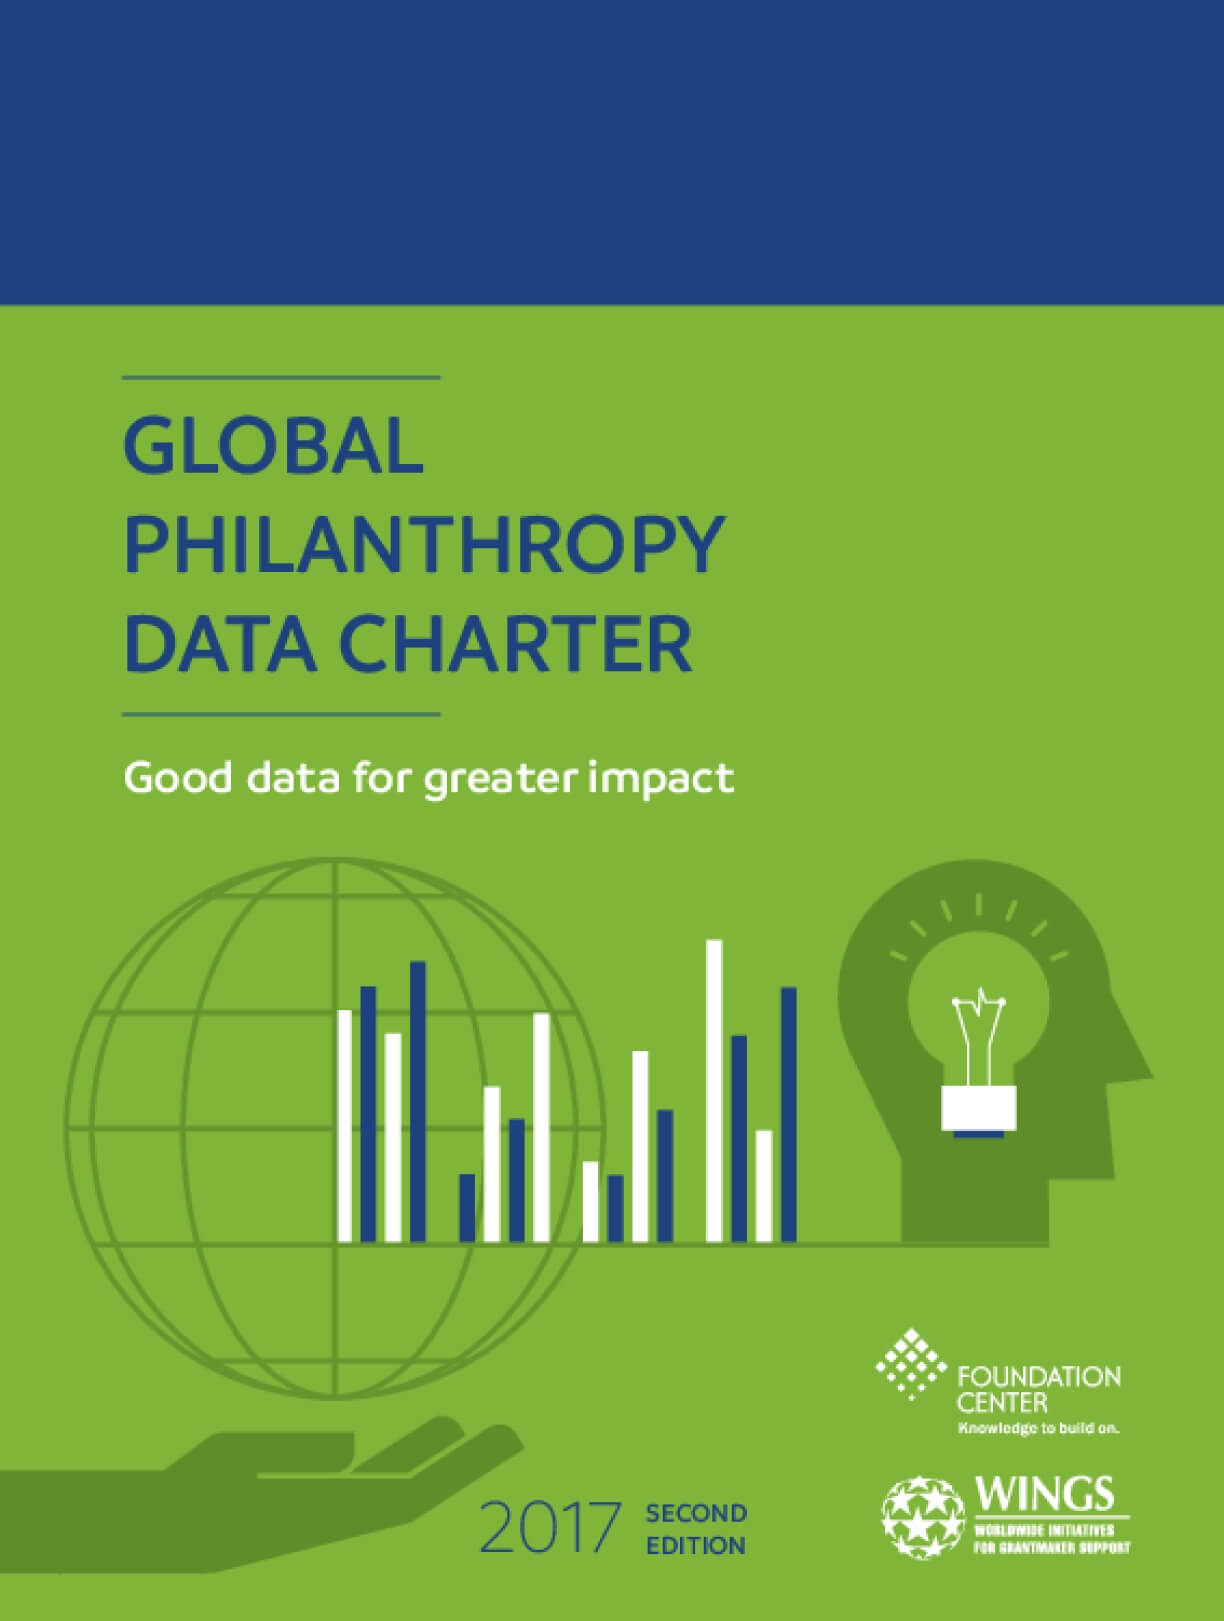 Global Philanthropy Data Charter 2017 - Second Edition